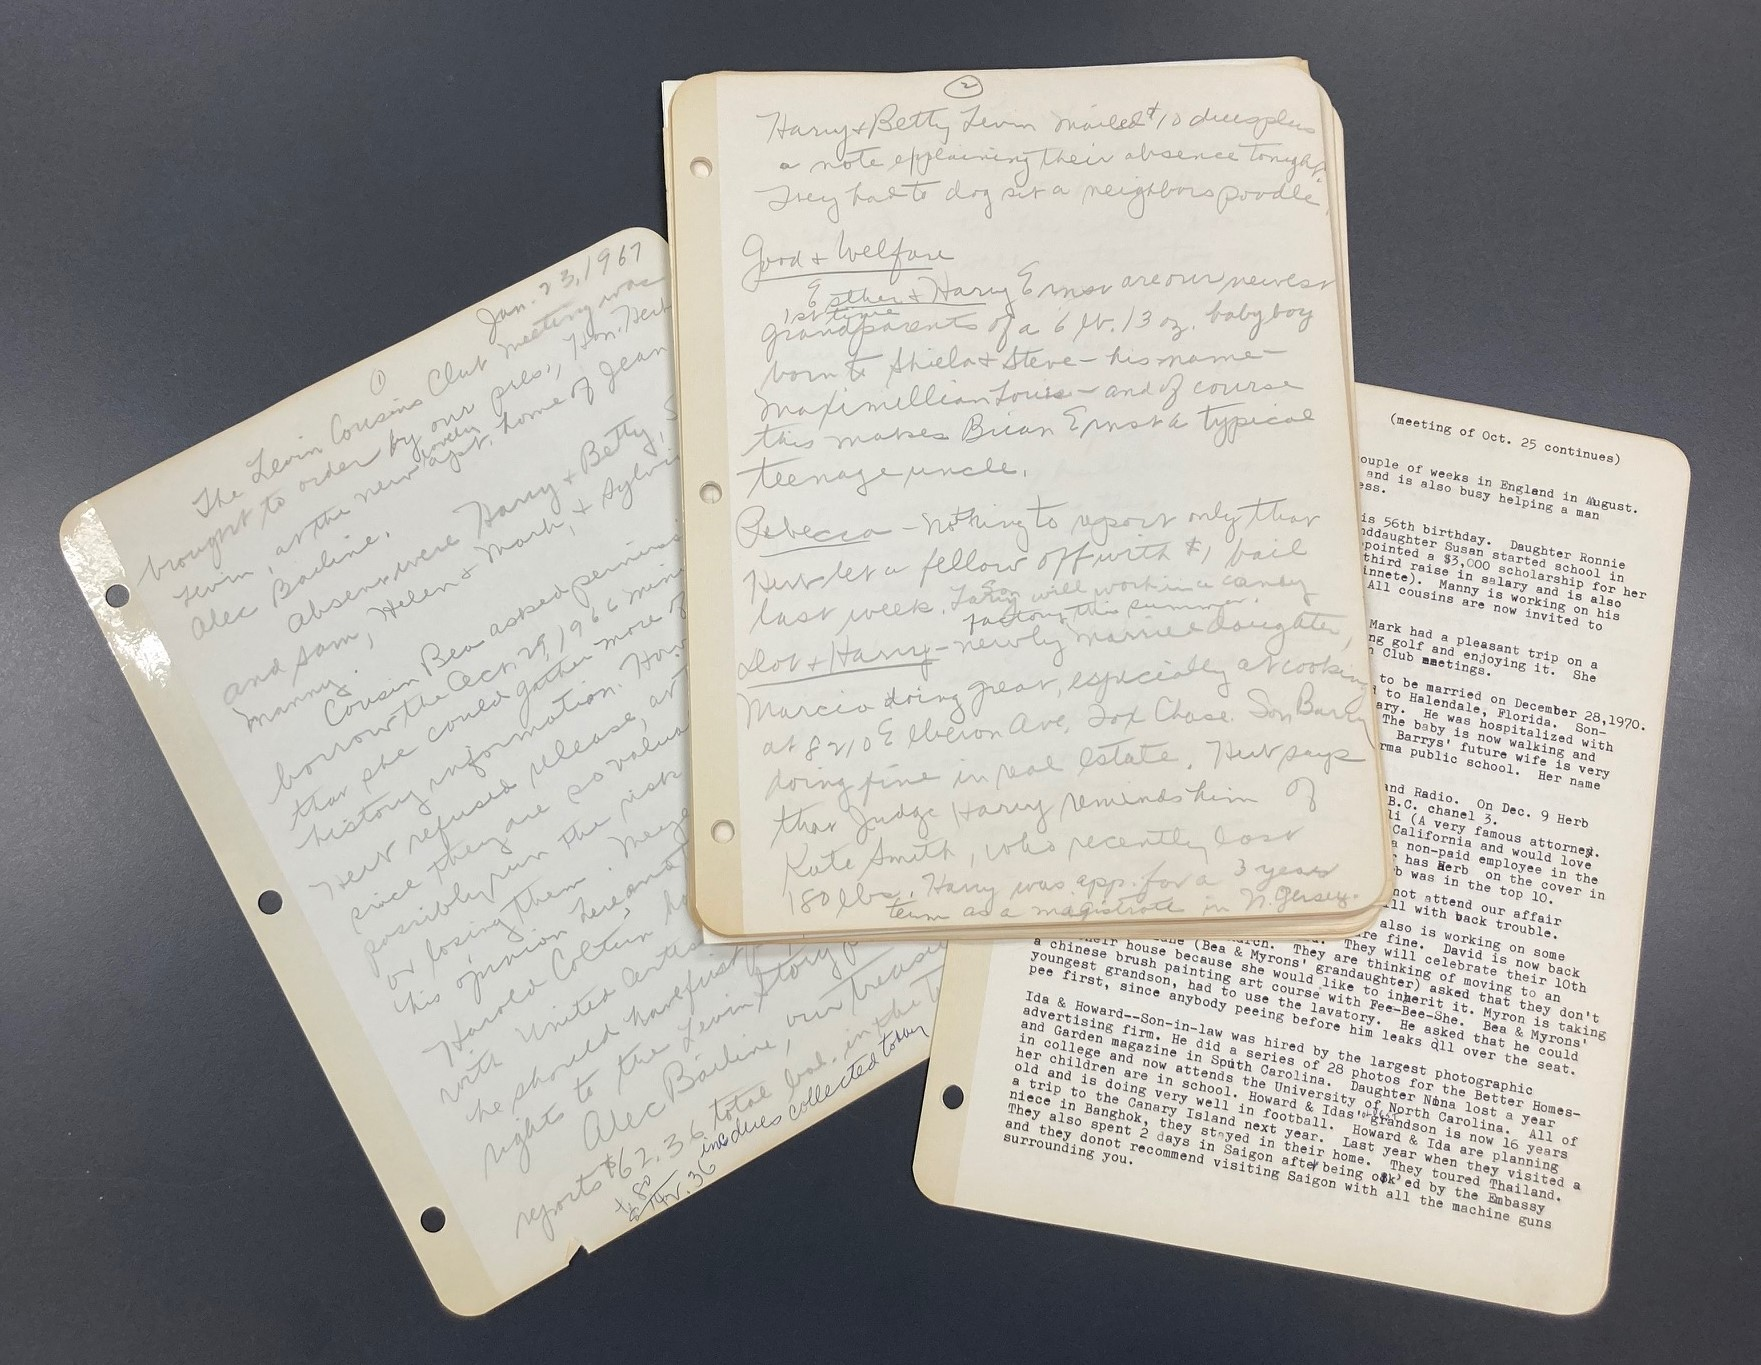 Handwritten and typed papers arranged on a gray background